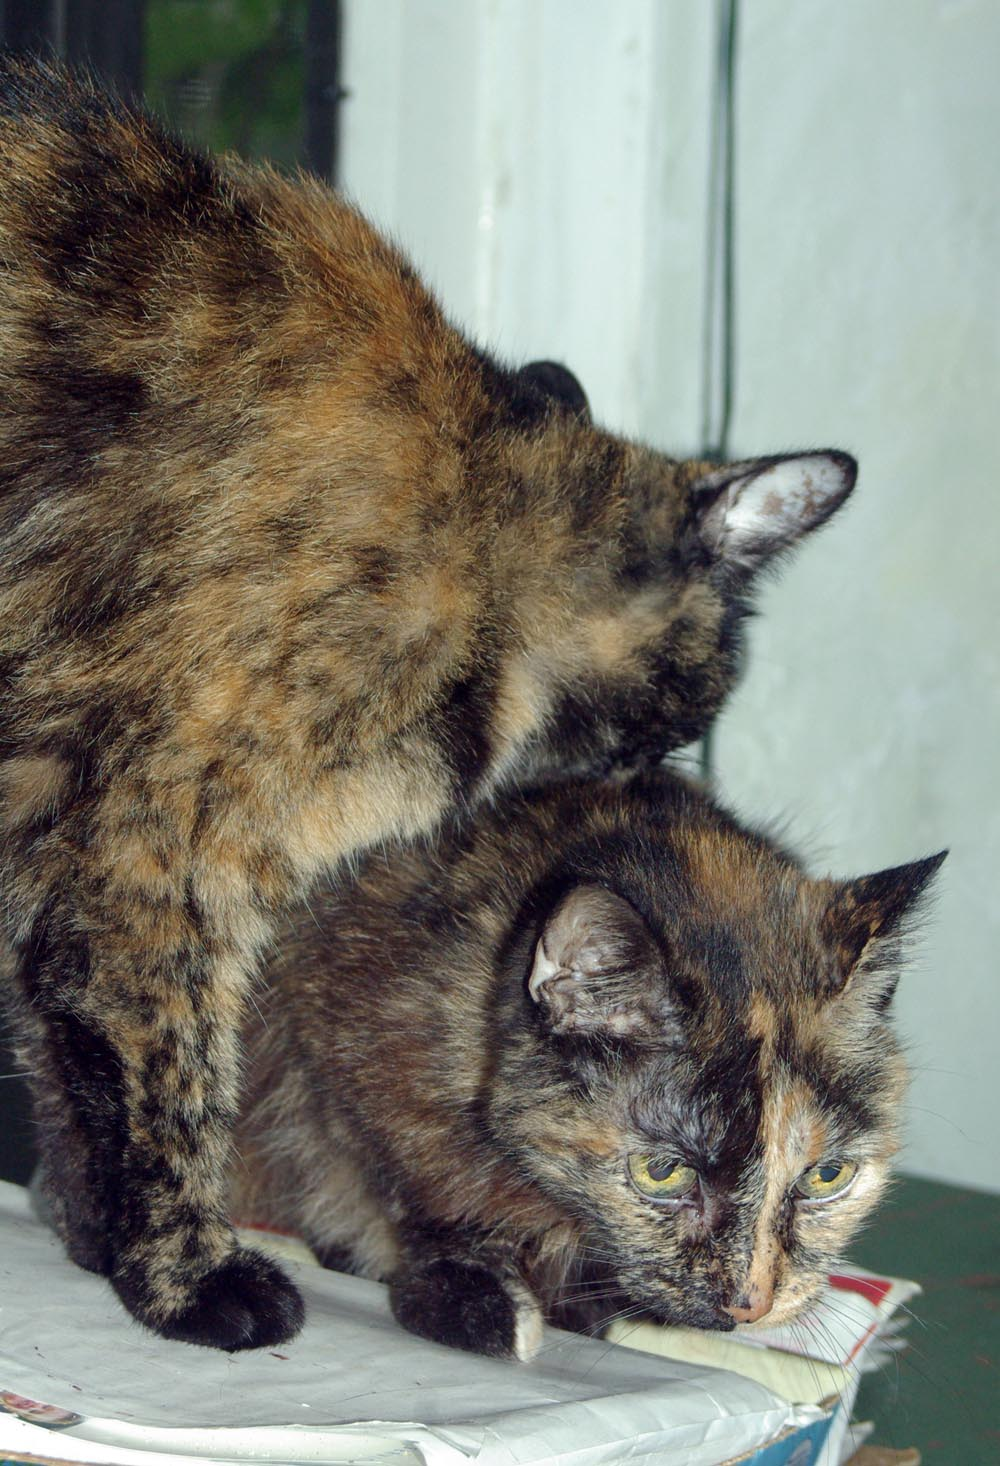 tortoiseshell cat washing other tortoiseshell cat